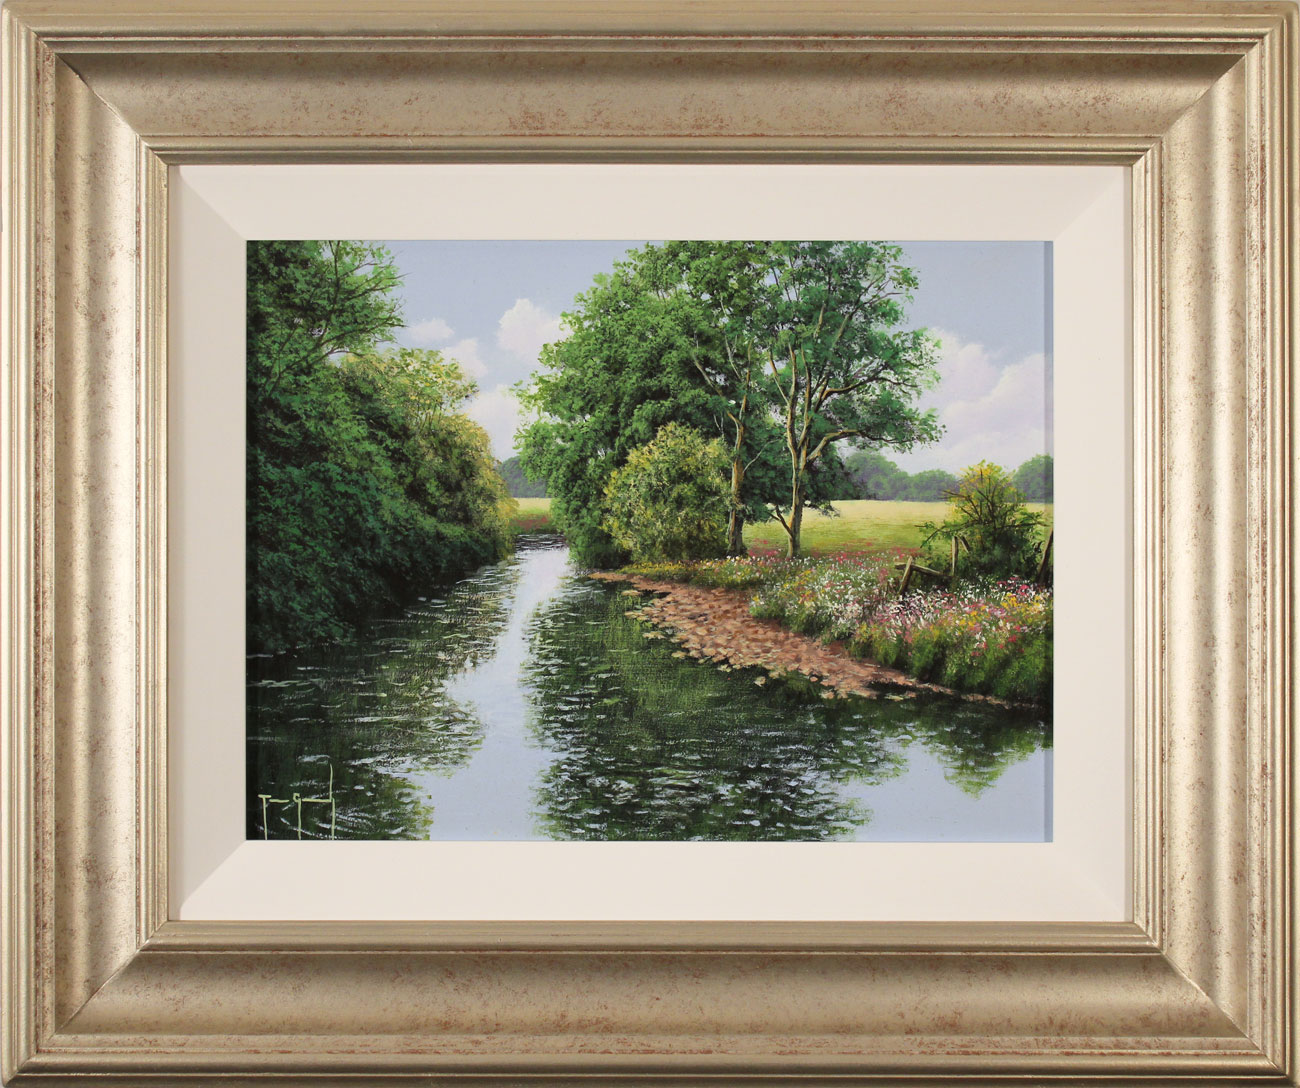 Terry Grundy, Original oil painting on panel, Midsummer Tranquillity Click to enlarge